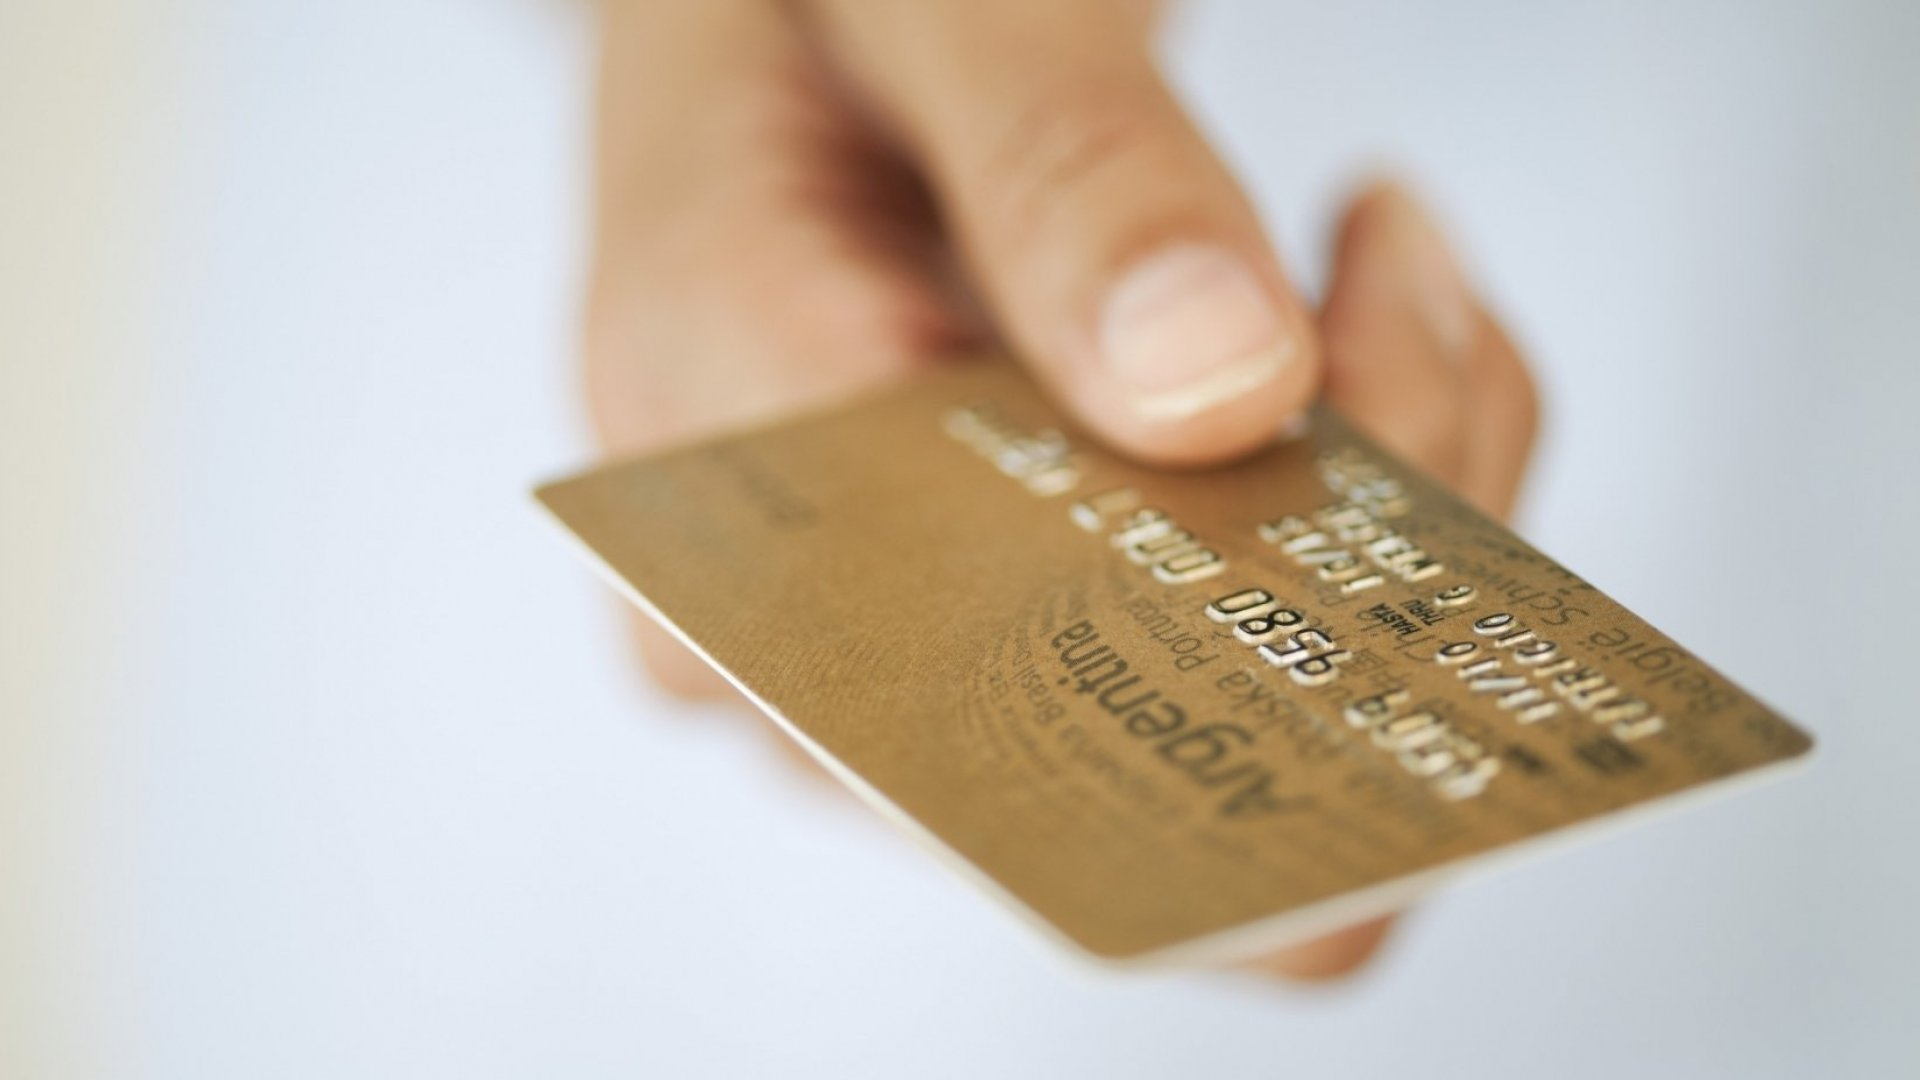 Thinking of Paying Employees With Prepaid Cards? Read This First